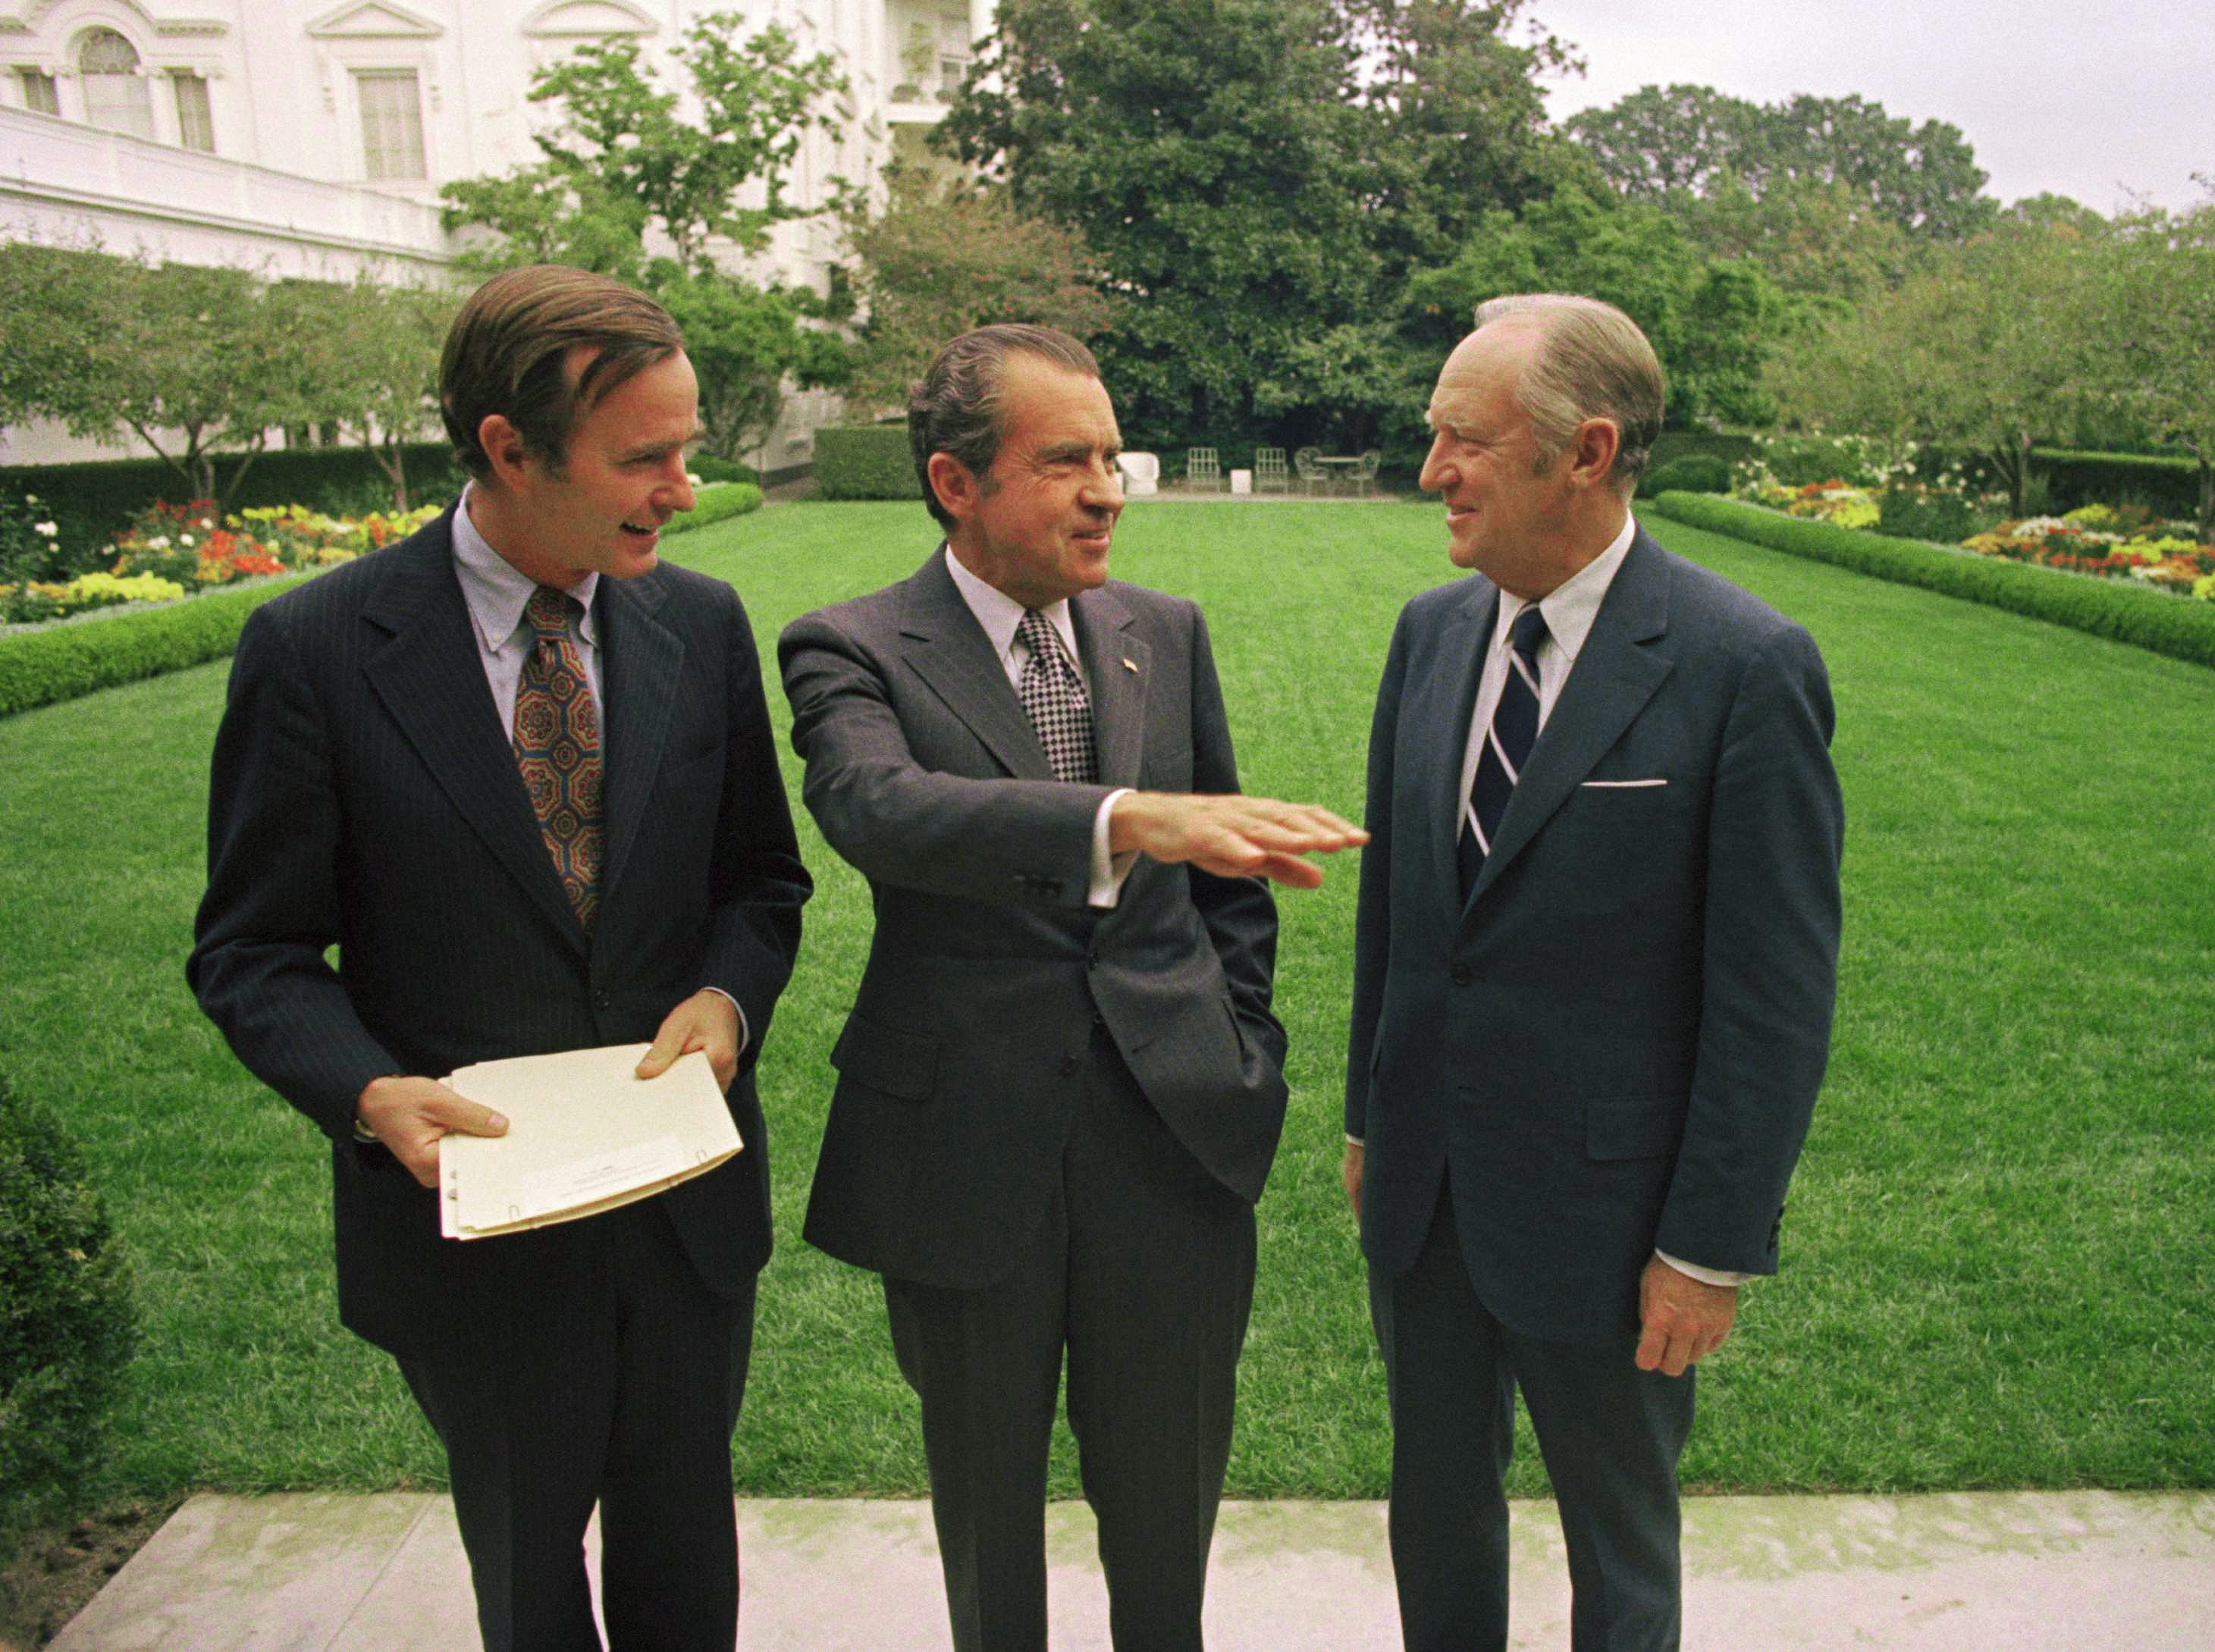 President Richard Nixon with Wm. Rogers, Sect. of State, right, and Geo Bush, U.N. Ambassador, left, in the Rose Garden at the White House in Washington on Oct. 22, 1971. (AP Photo/Henry Burroughs)